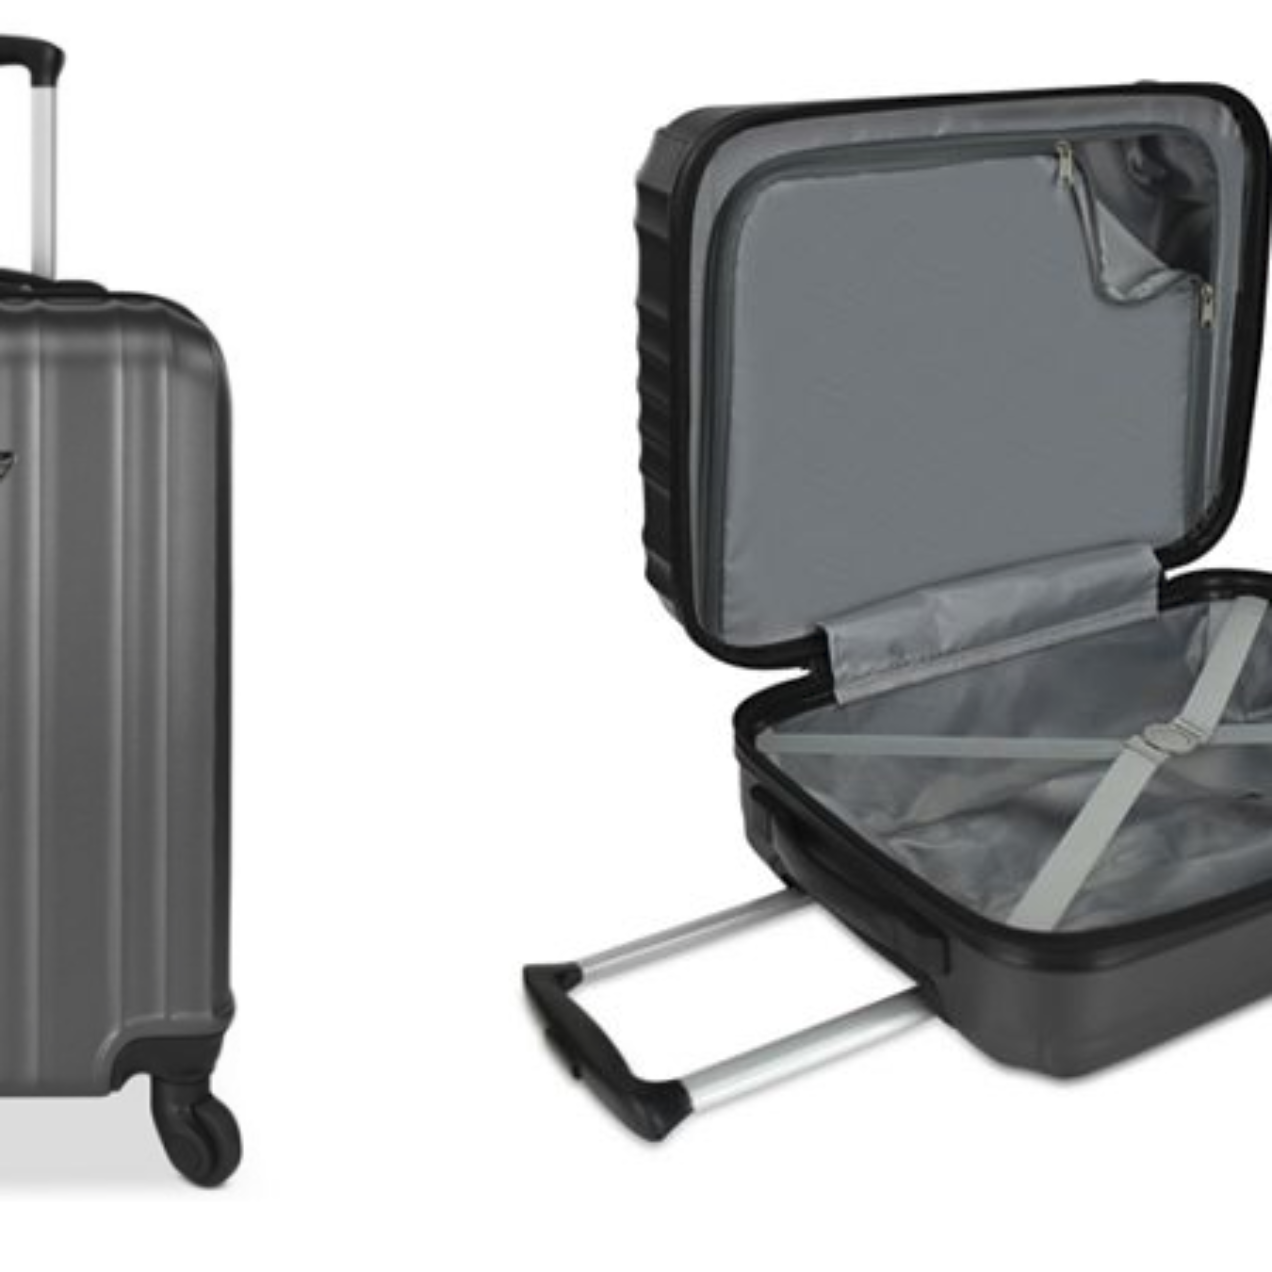 Durango 20.5″ Hardside Carry-On Spinner Suitcase Only $34.99 (Regular $140)